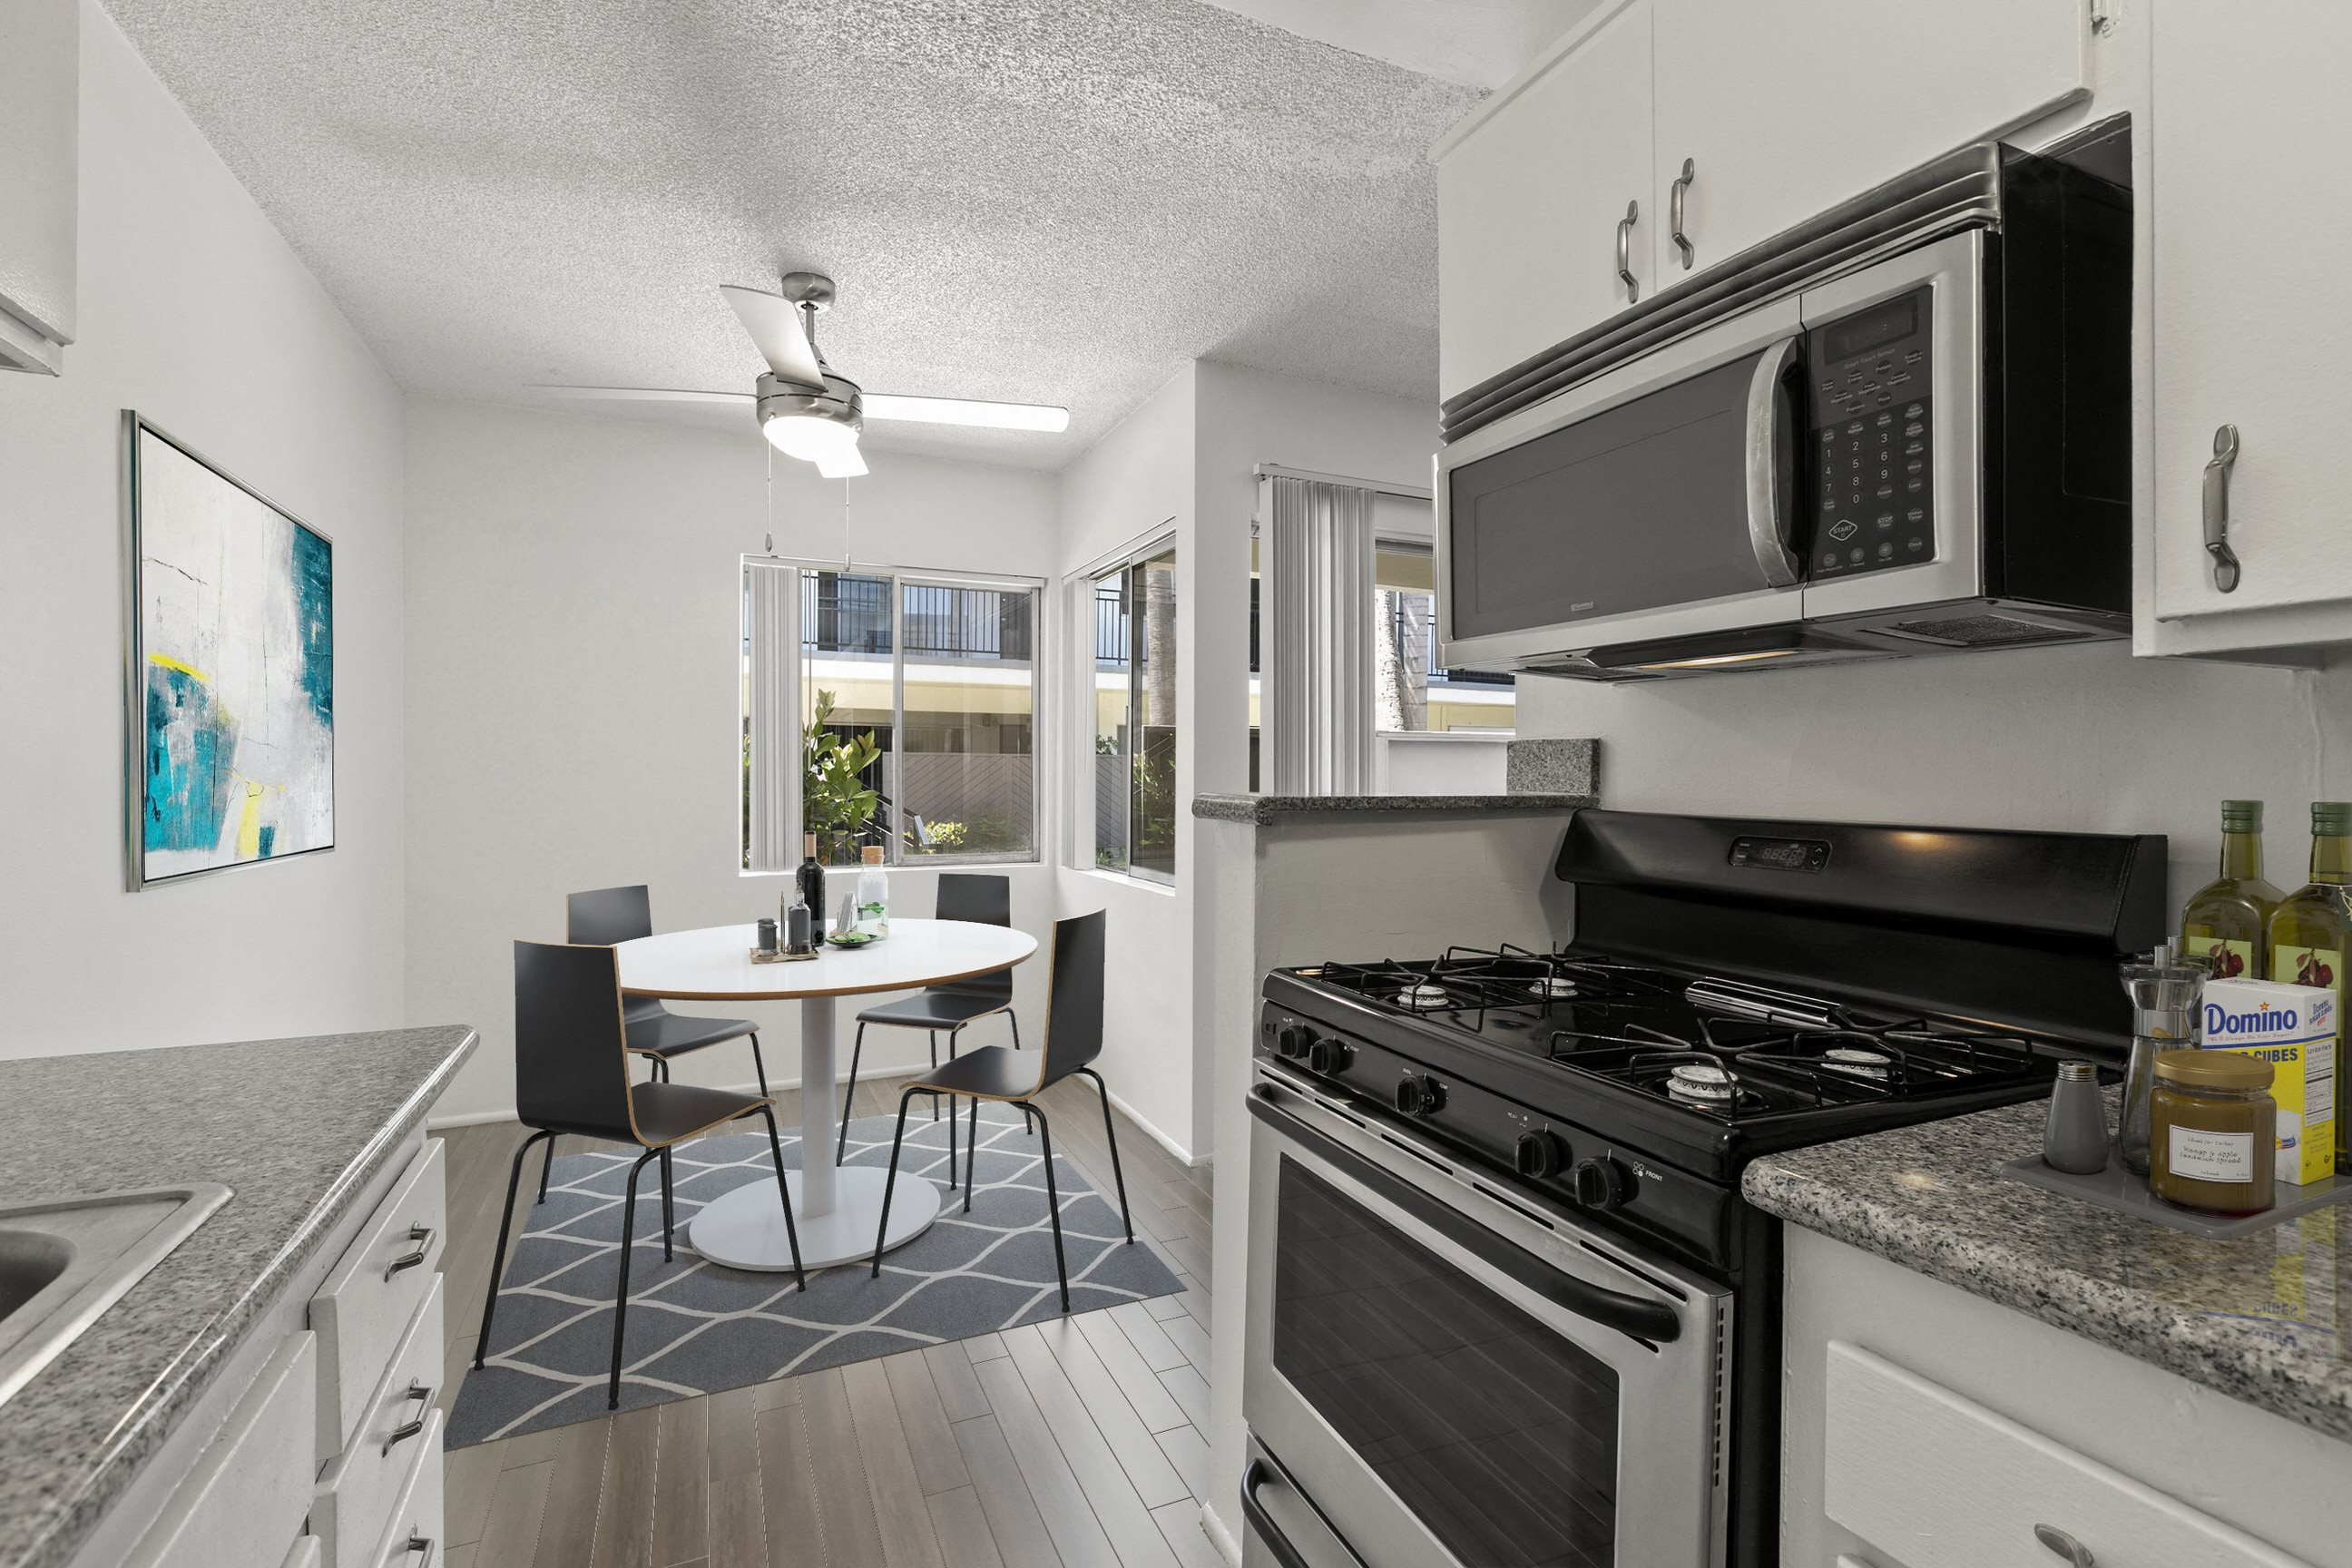 Kitchen at Pacific Rose Apartments, 10705 Rose Ave, Los Angeles, CA 90034